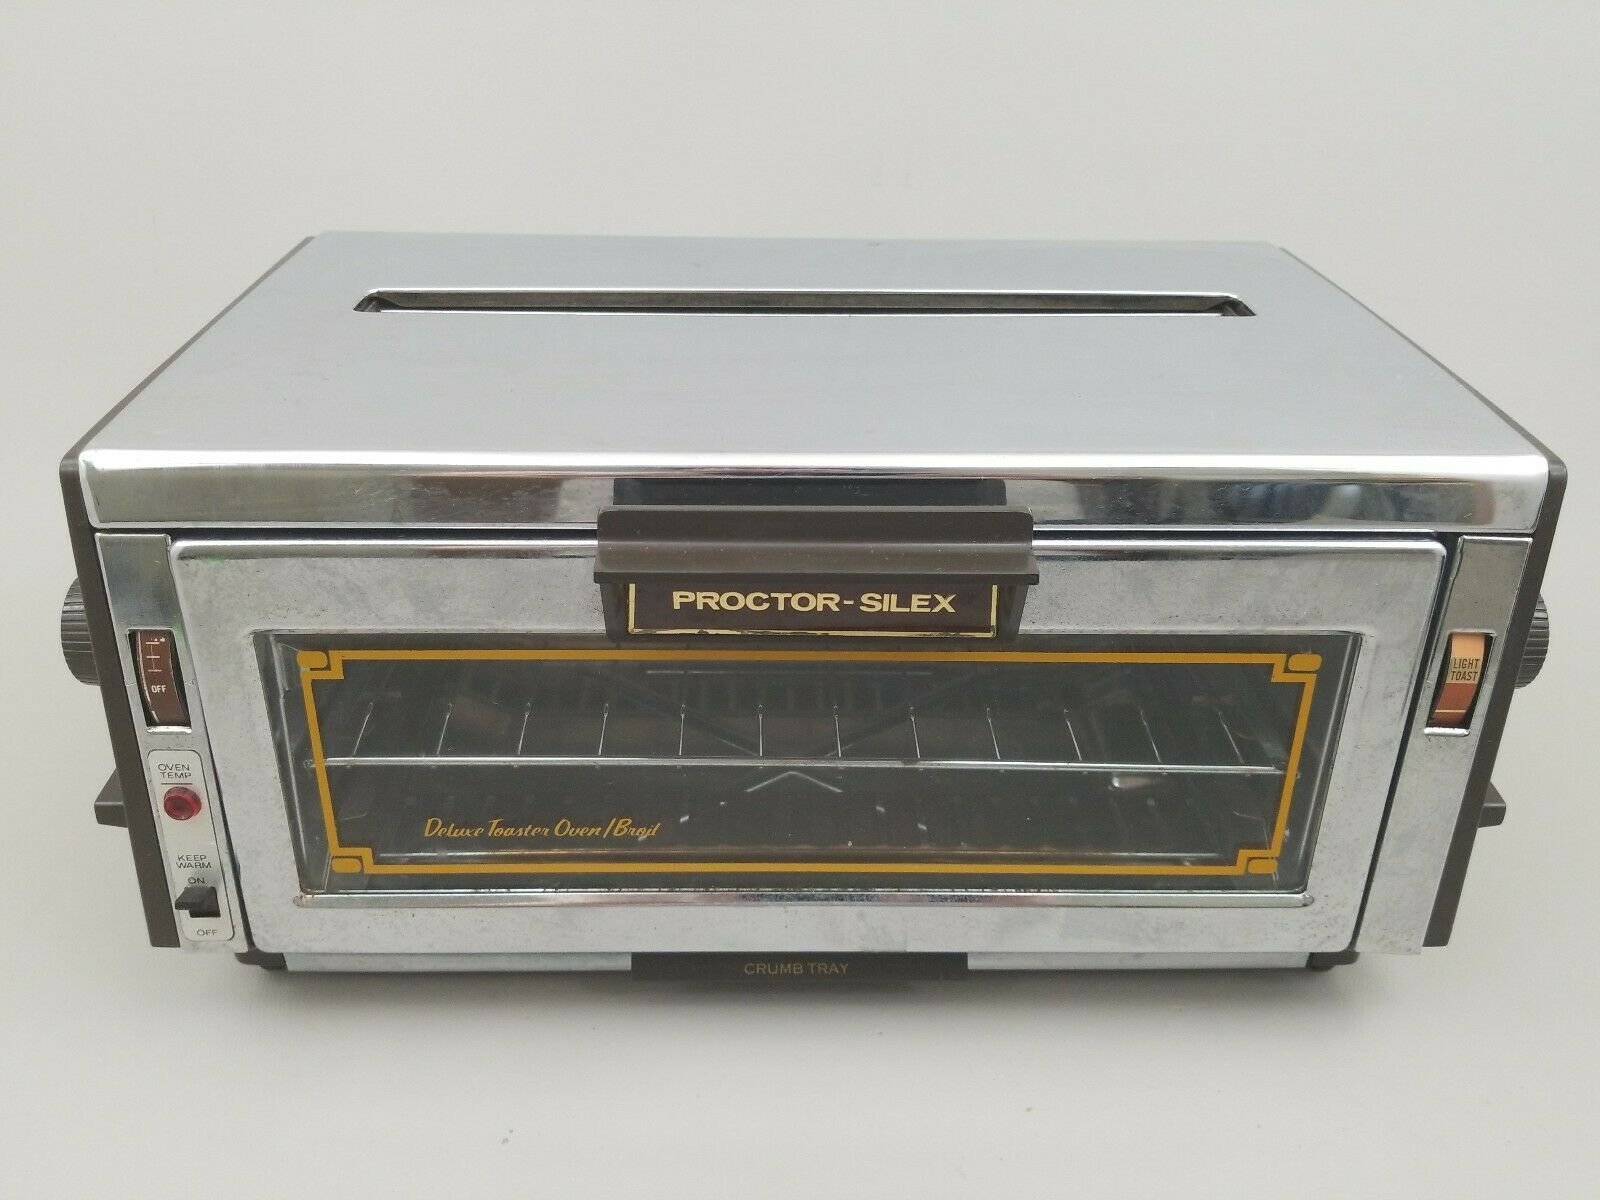 Vintage Proctor Silex Deluxe Toaster Oven Broiler Pop Up 0504na Rare Ovens Ideas Of Ovens Ovens With Images Toaster Oven Oven Sale Toaster